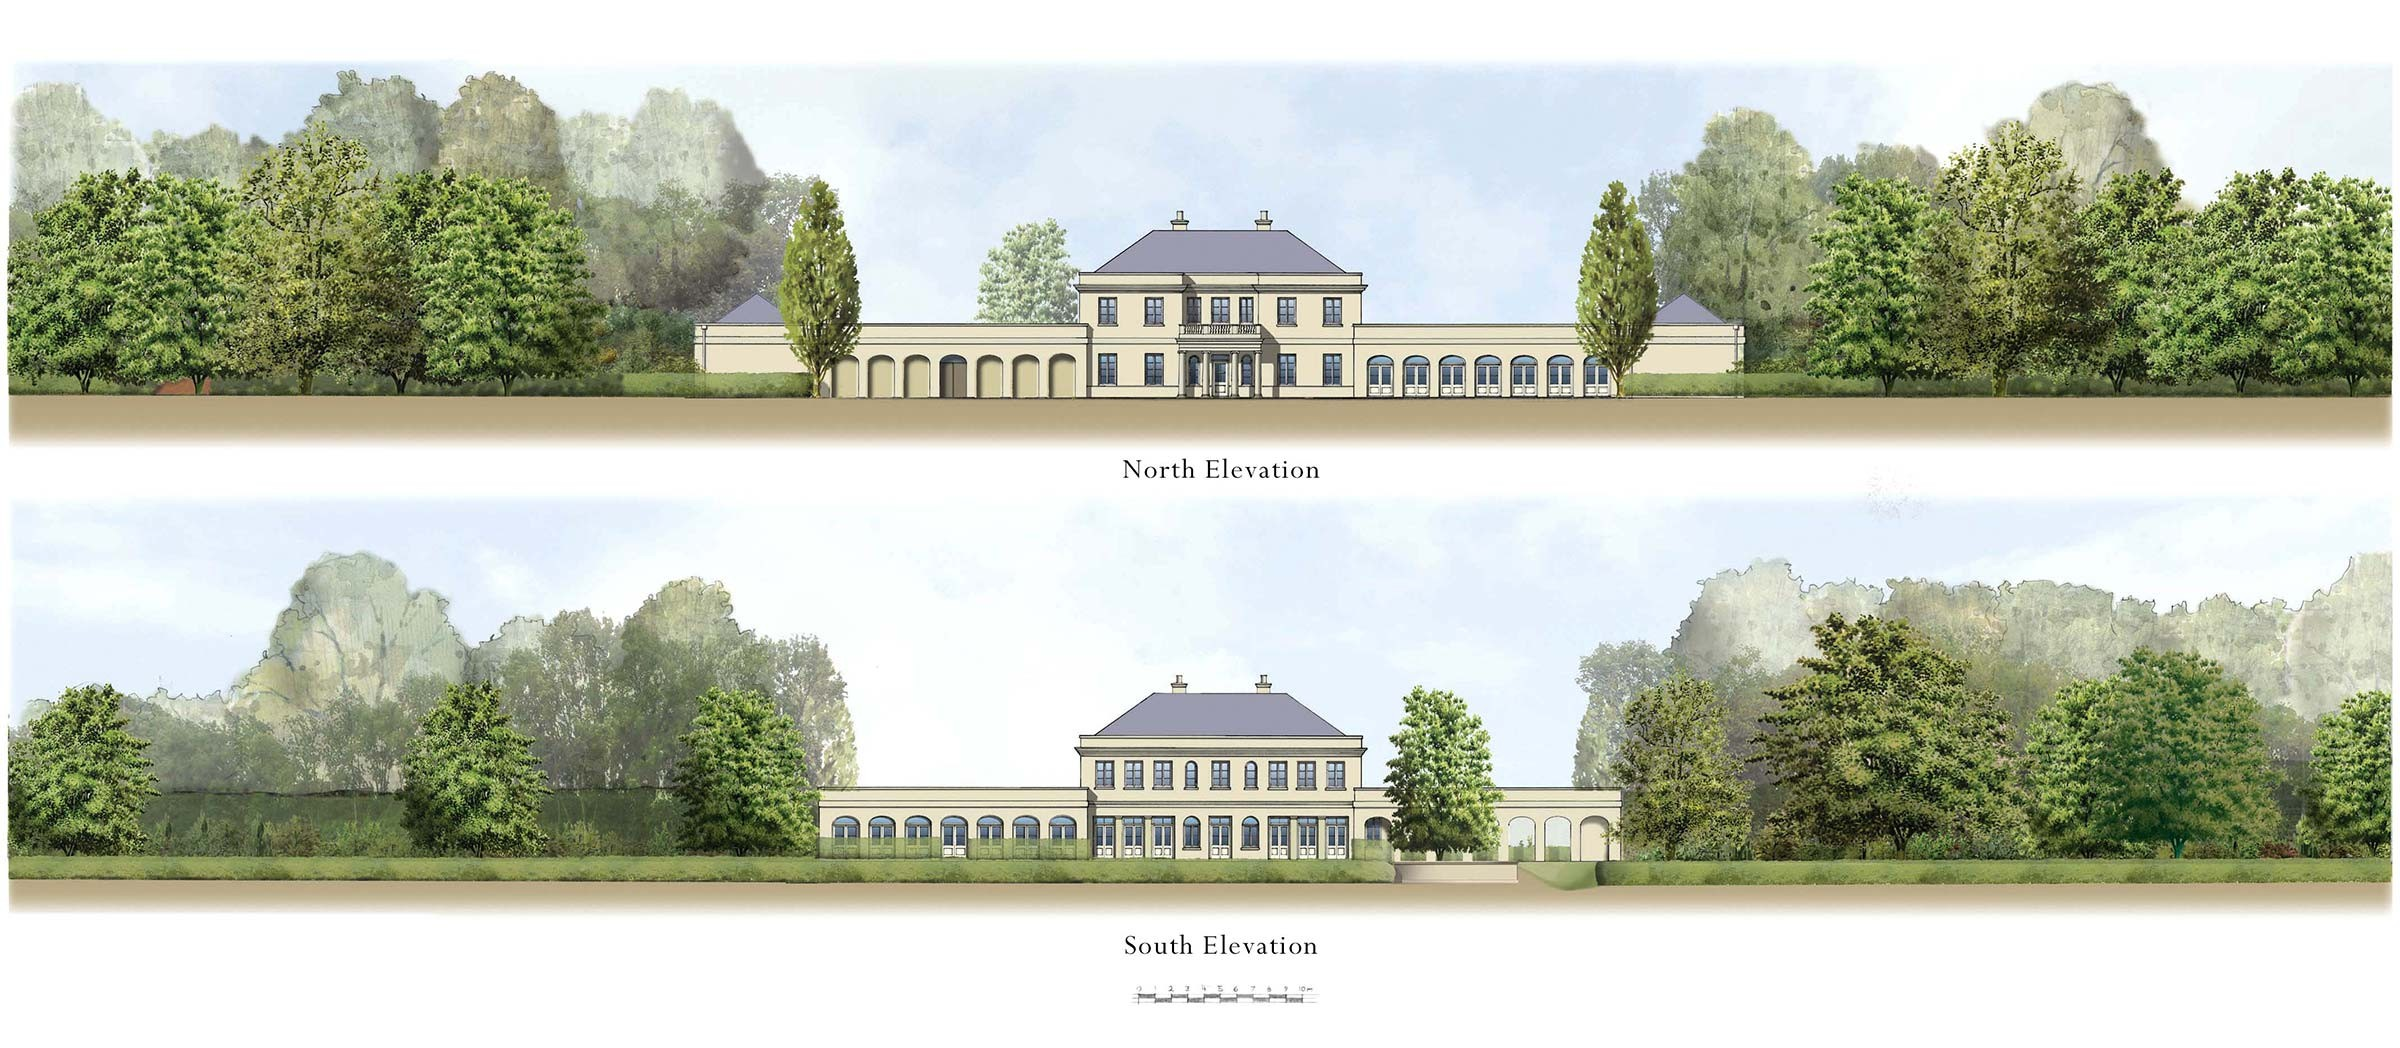 New country house near Rugby, Warwickshire